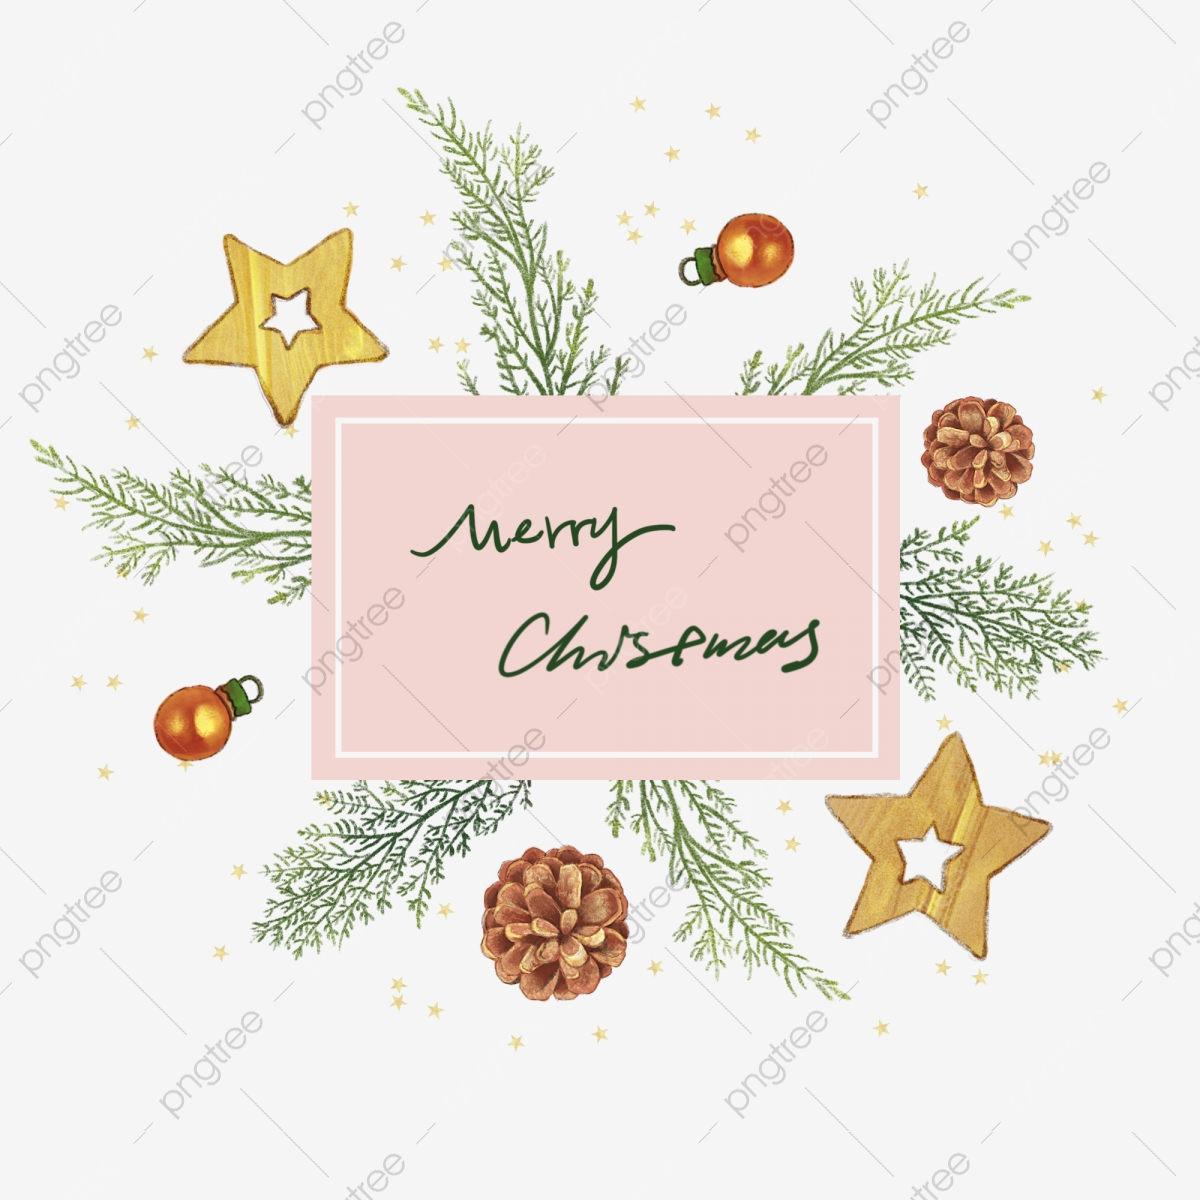 Christmas happy holiday winter. Holidays clipart pine